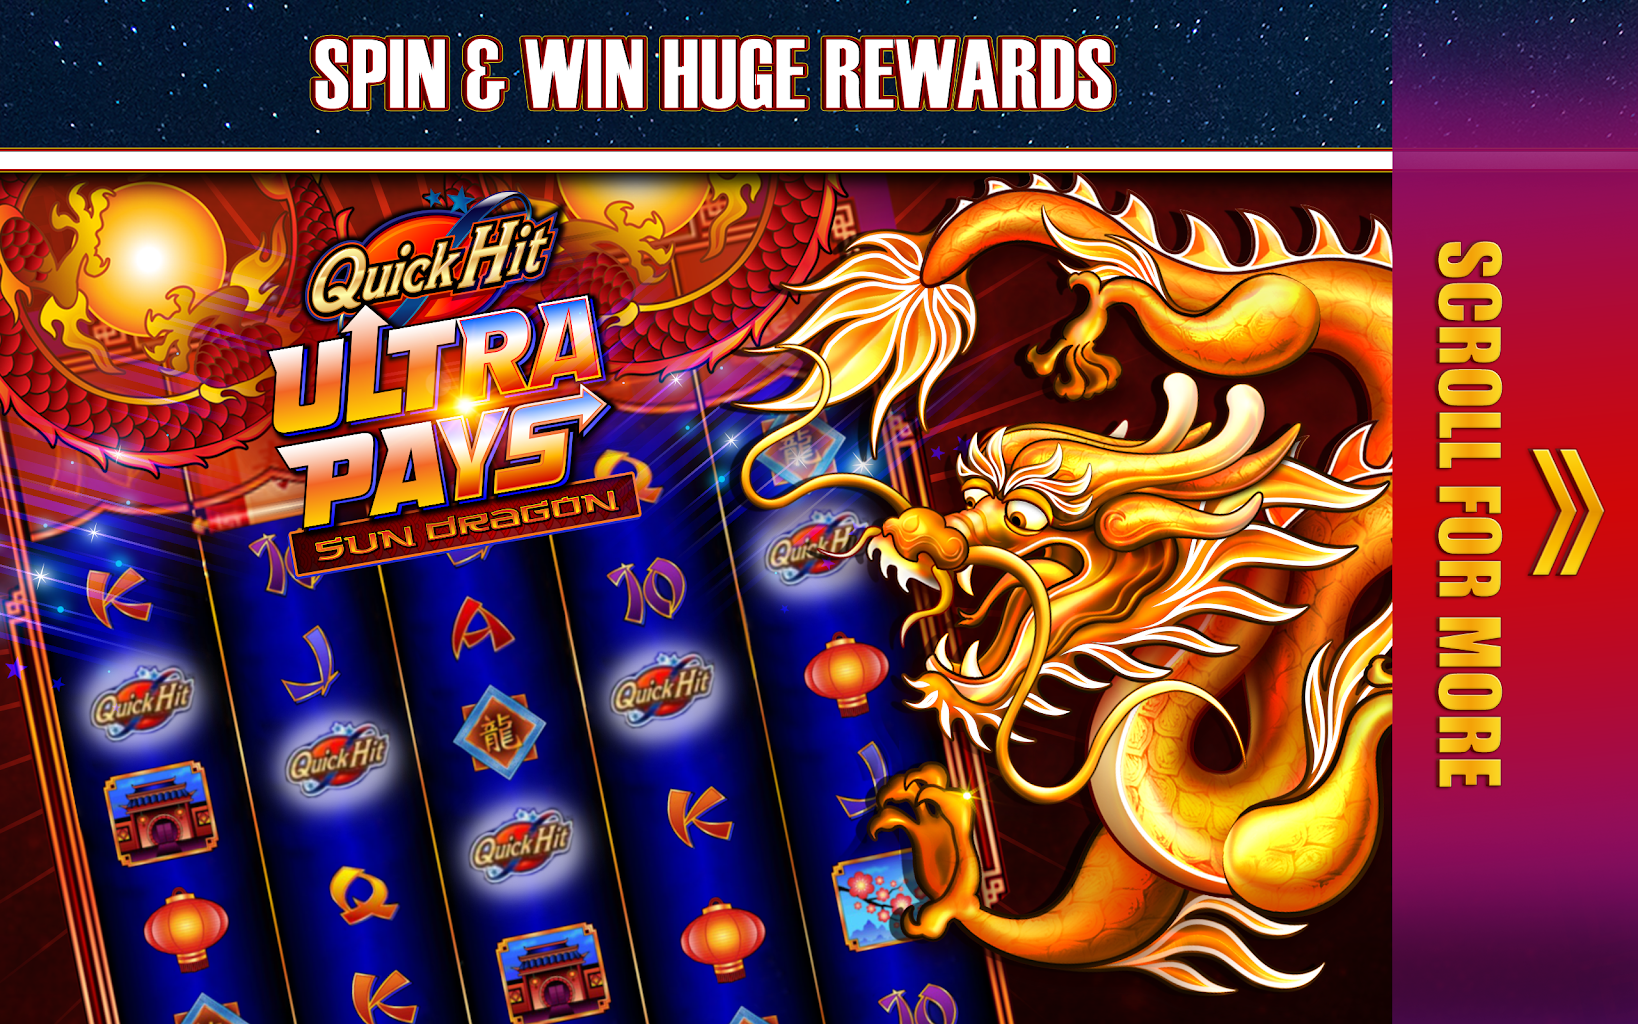 Play mobile casino games